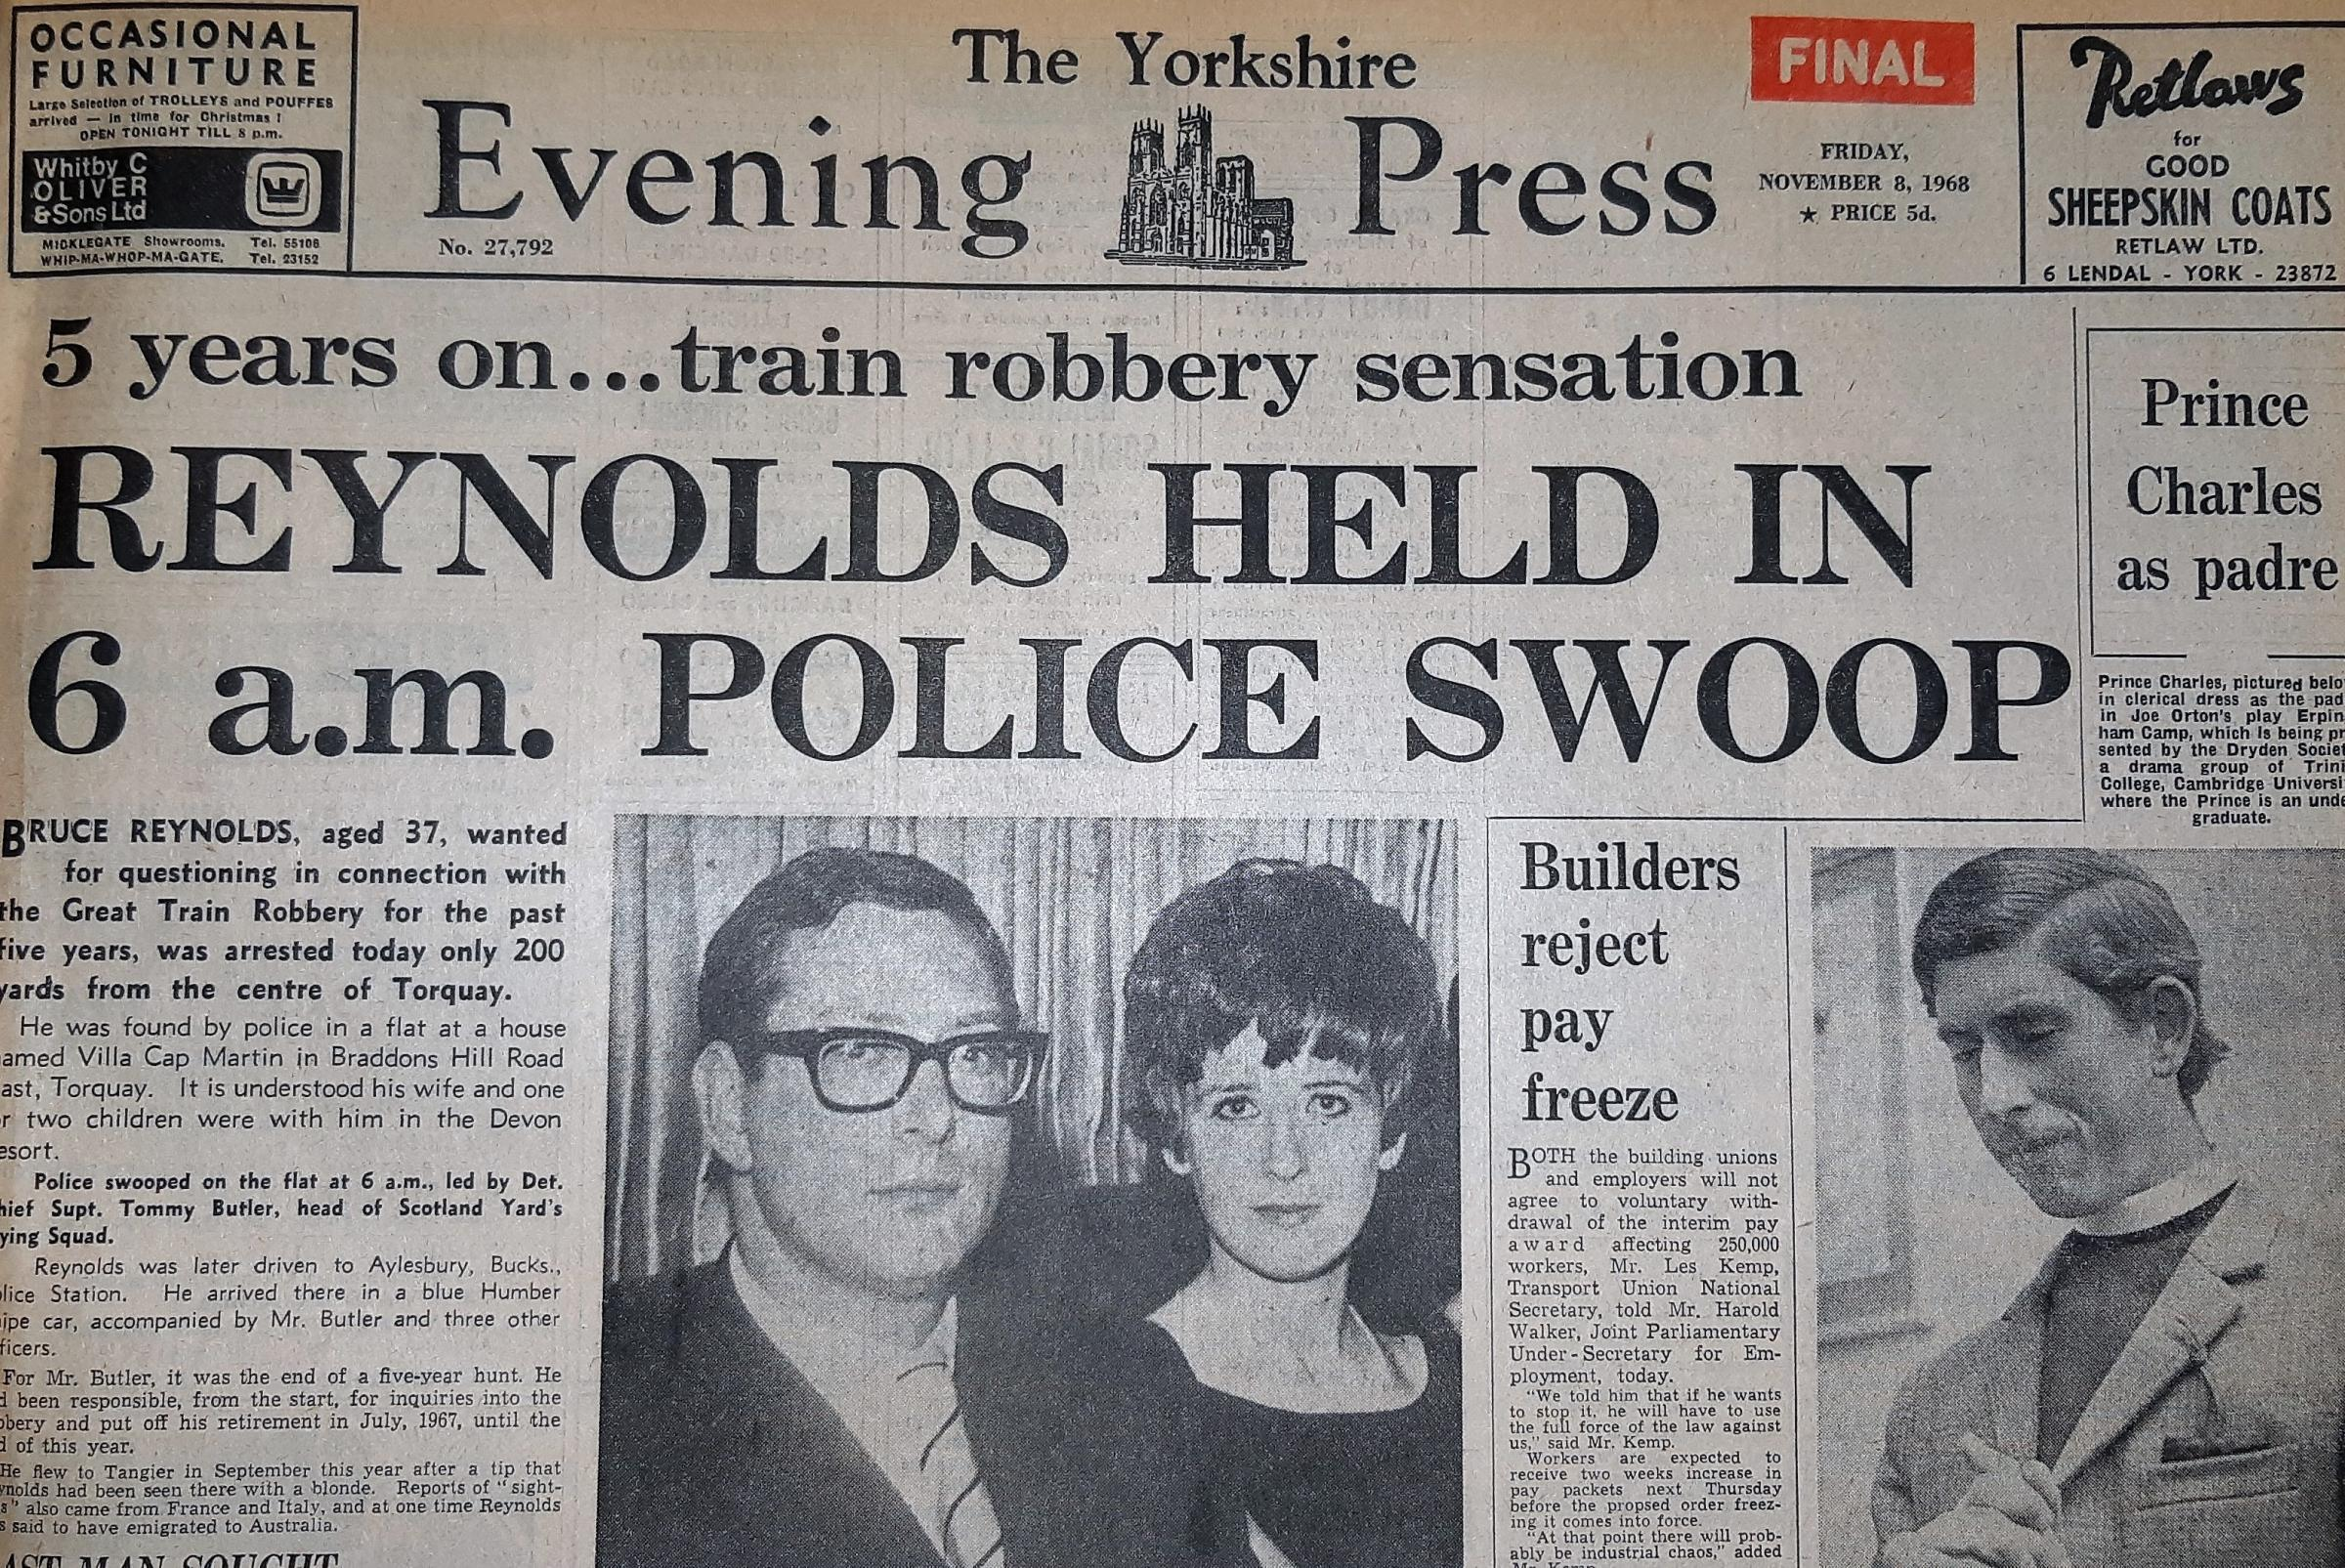 The front page of the Yorkshire Evening Press from November 8, 1968